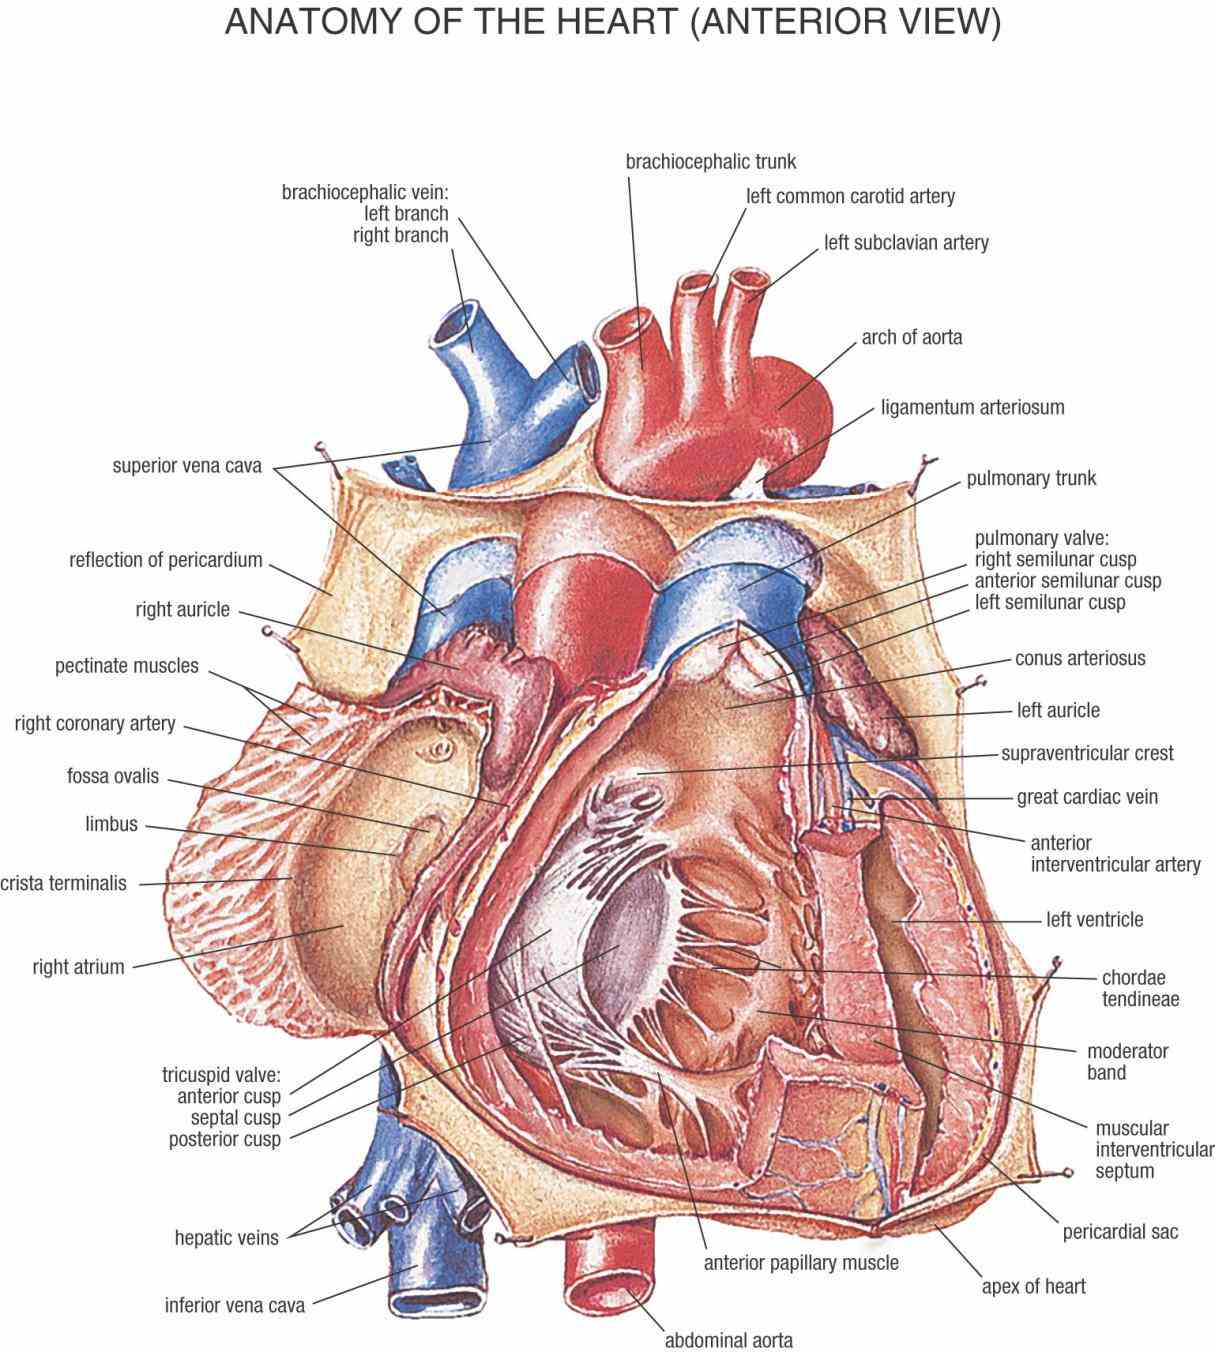 text below explains structure functions of heart mammalian cardiology Heart Structures And Functions Anatomy teaching package a beginners guide